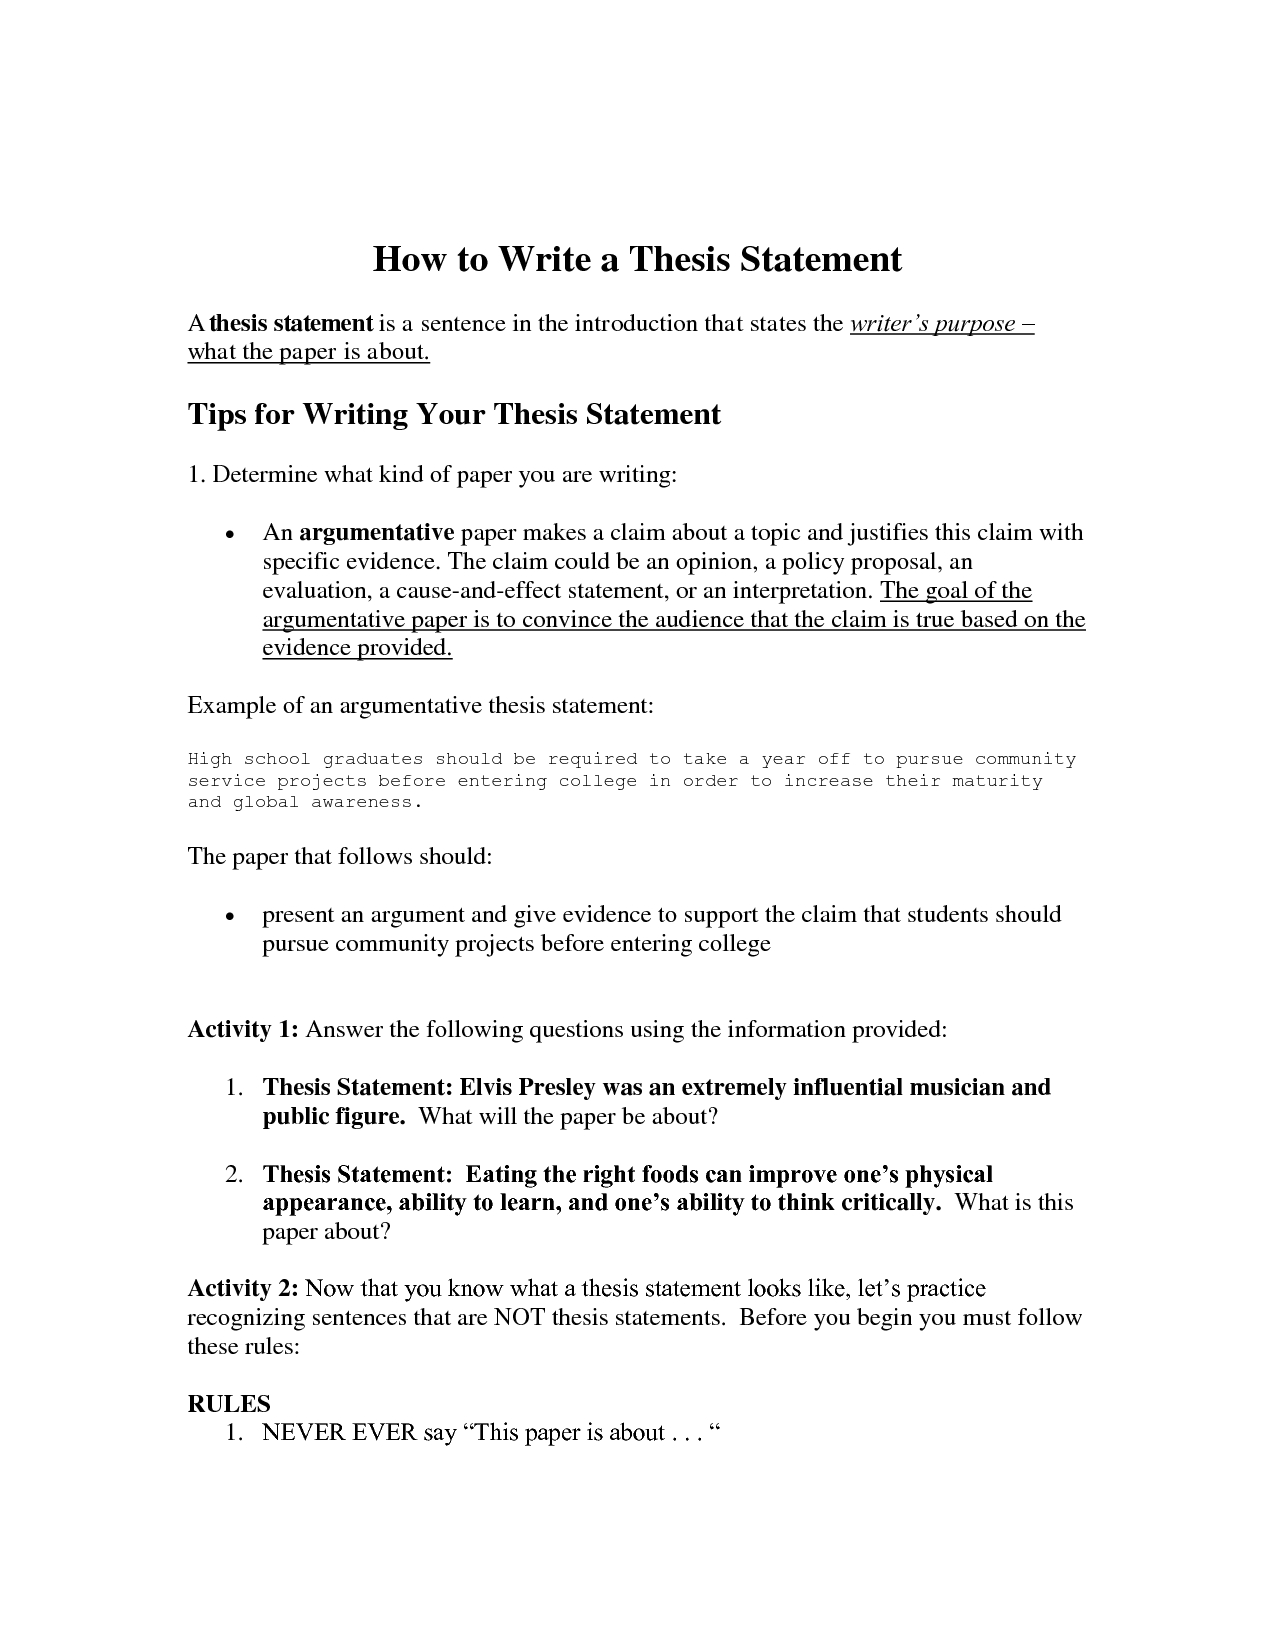 014 How To Write Thesis Statement For An Essay Statements